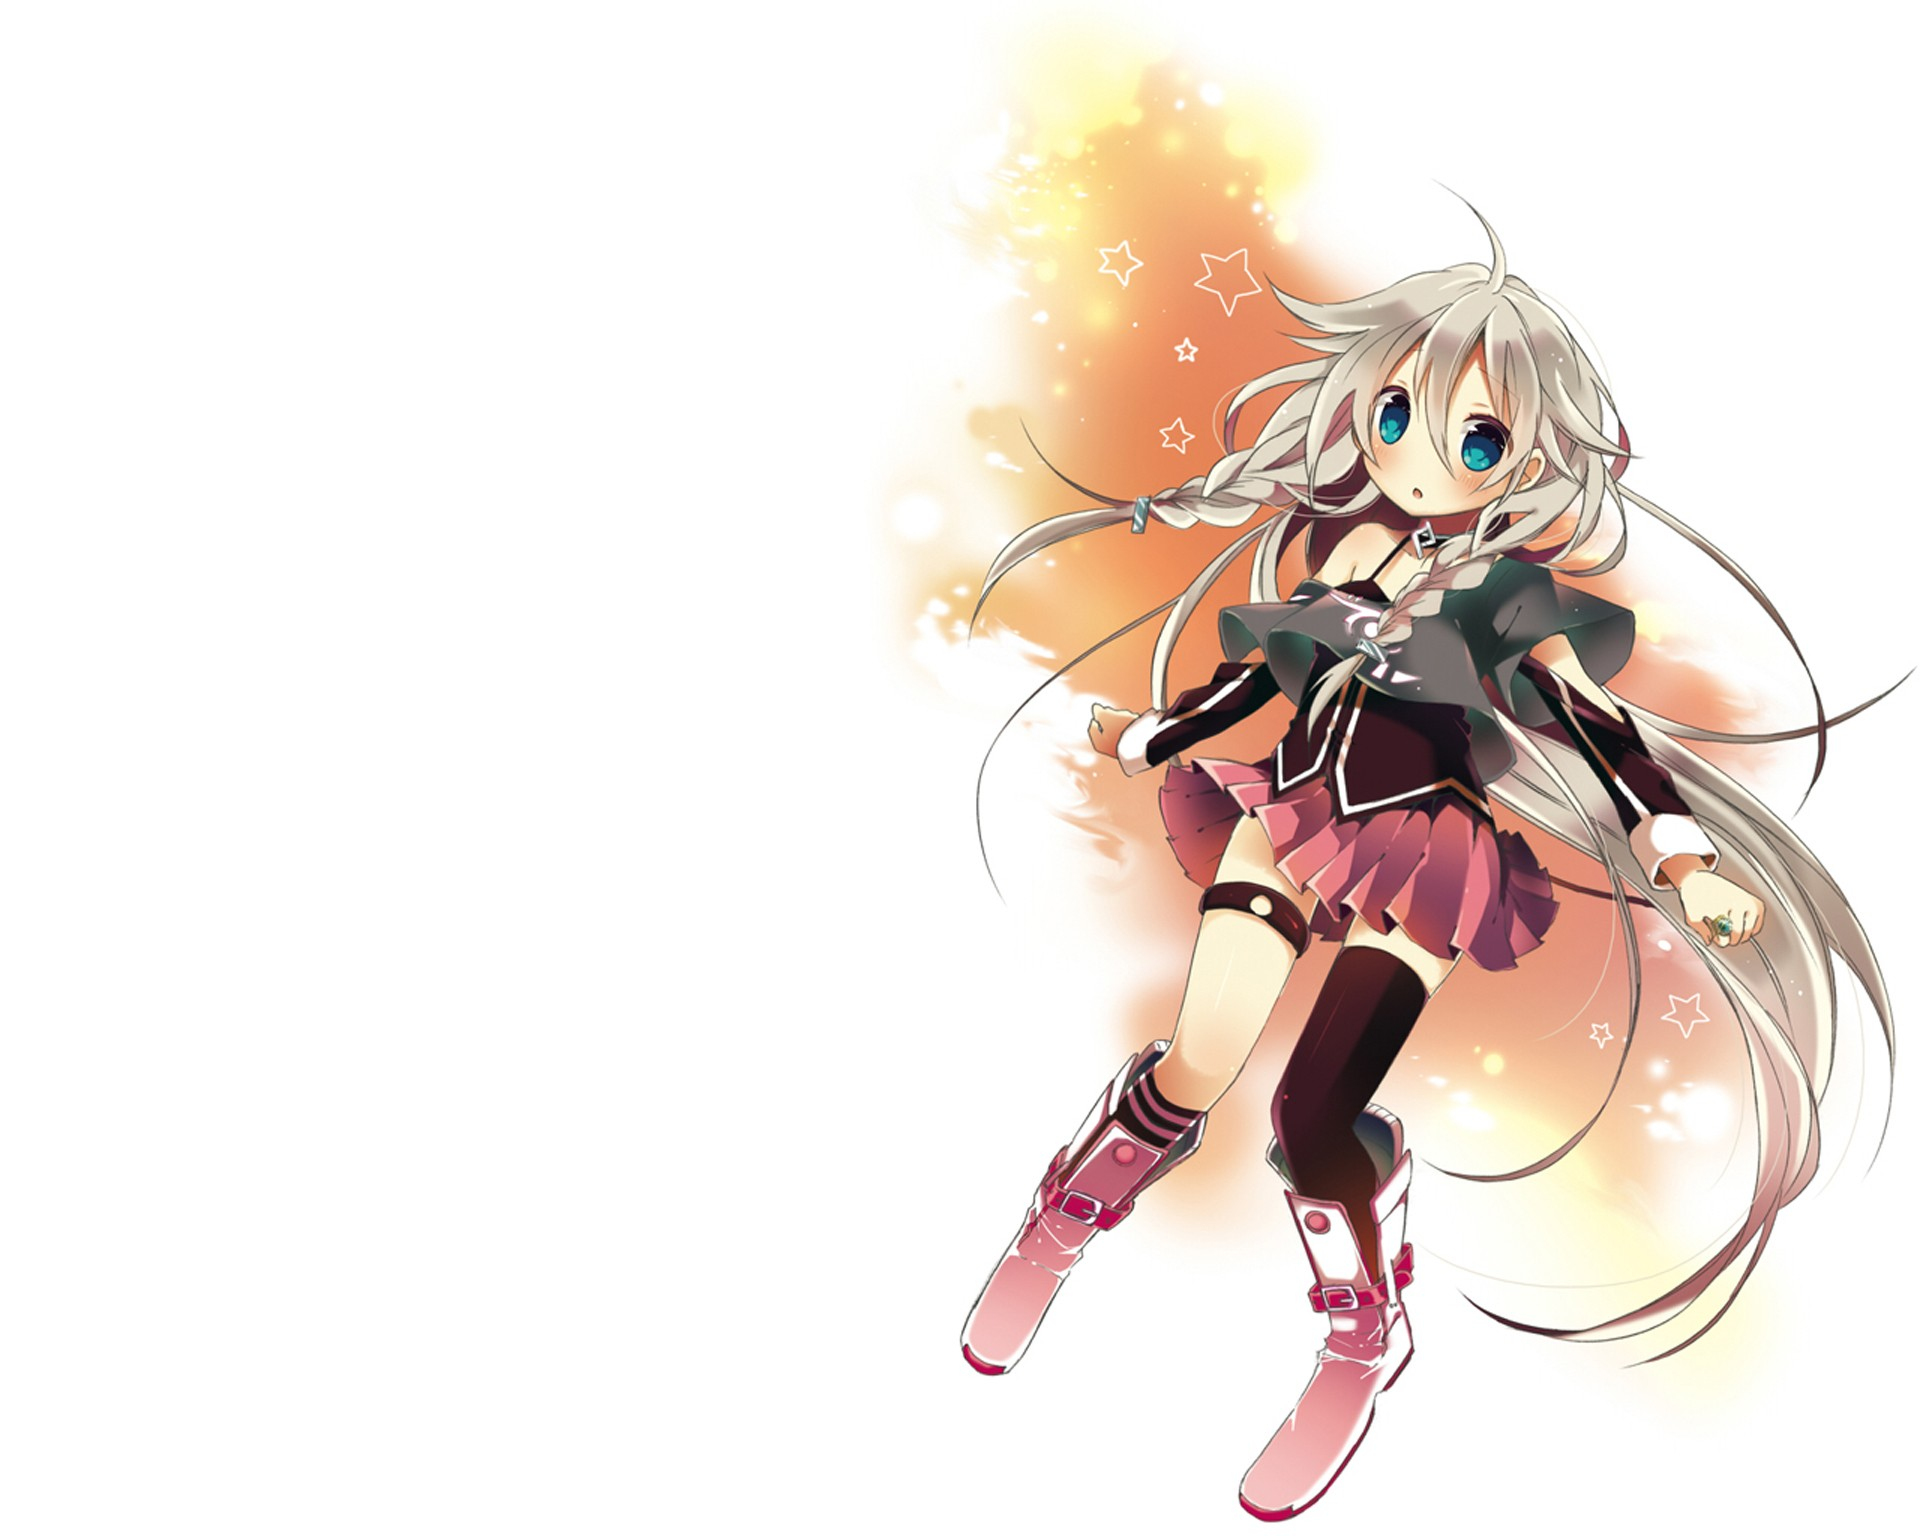 Vocaloid Chibi Wallpaper 1920x1536 Vocaloid Chibi Anime White 1920x1536